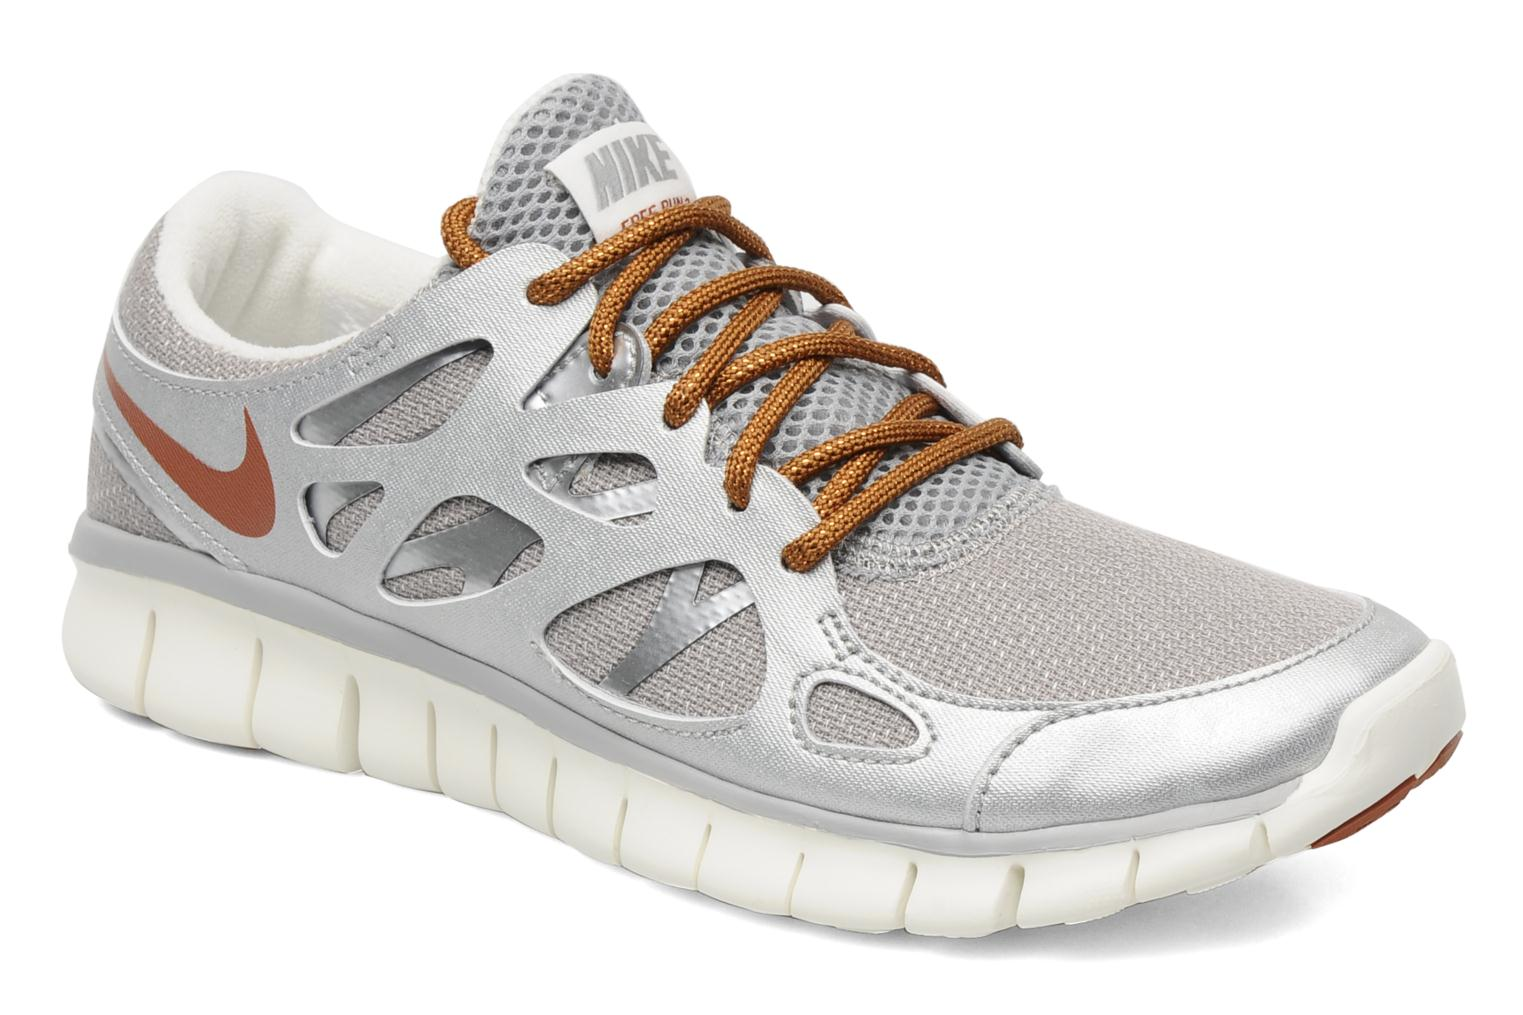 Wmns Nike Free Run+ 2 Prm Ext Mtt Silver/Ms Orange-Metallic Lstr-Sl